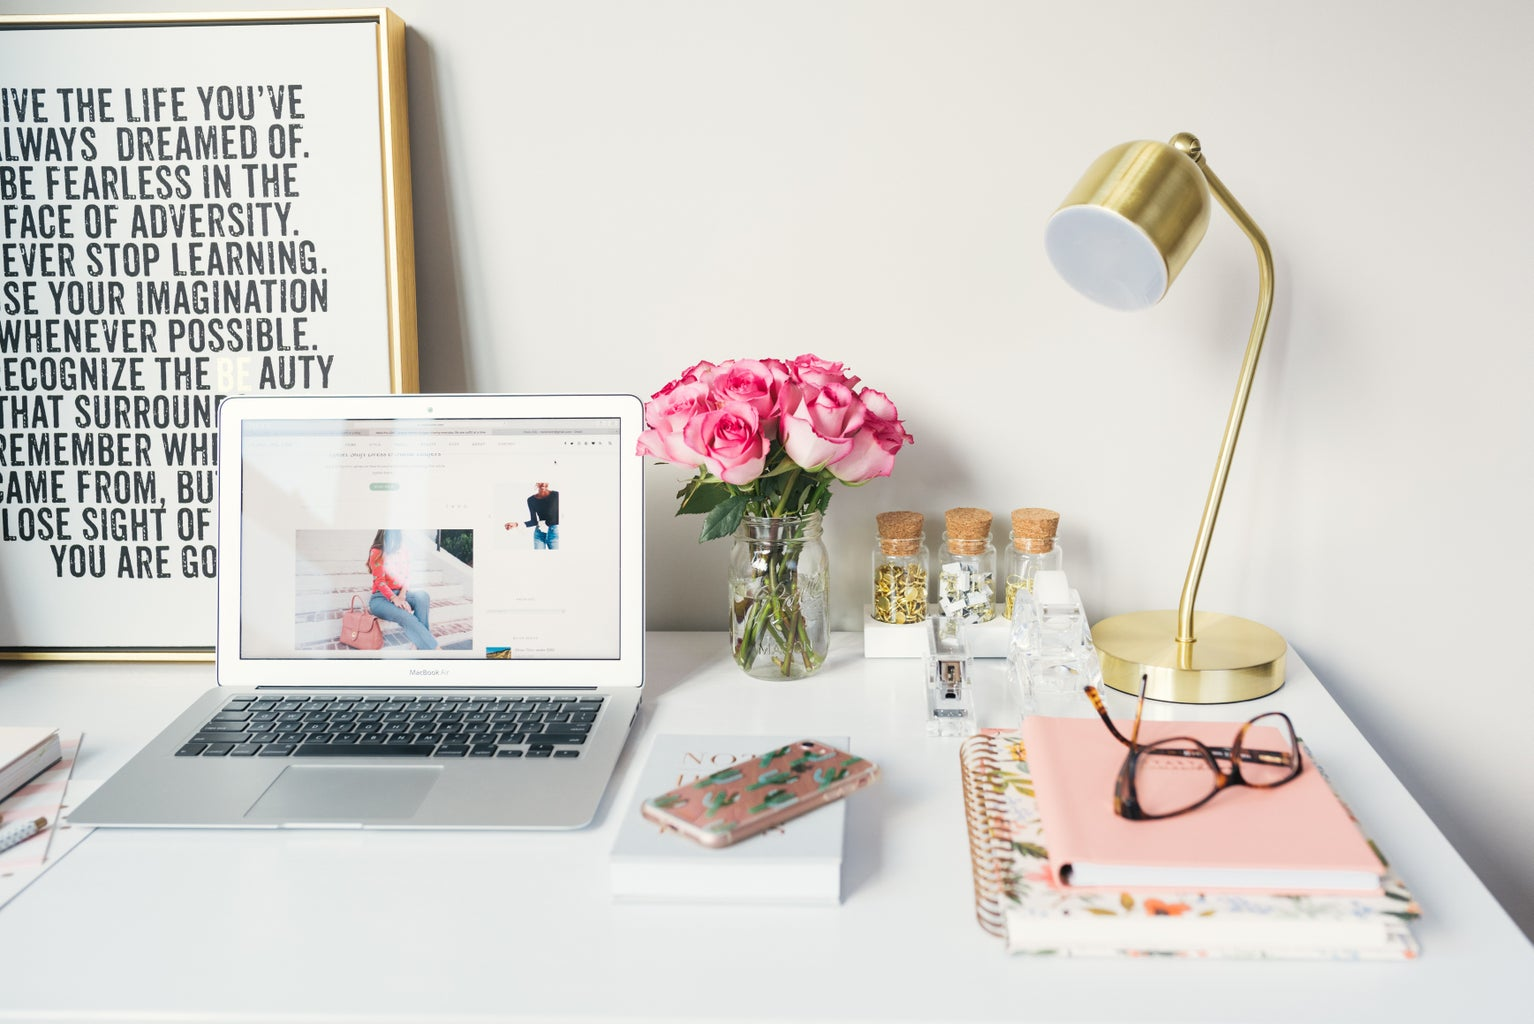 Calm environment with desk set up for studying